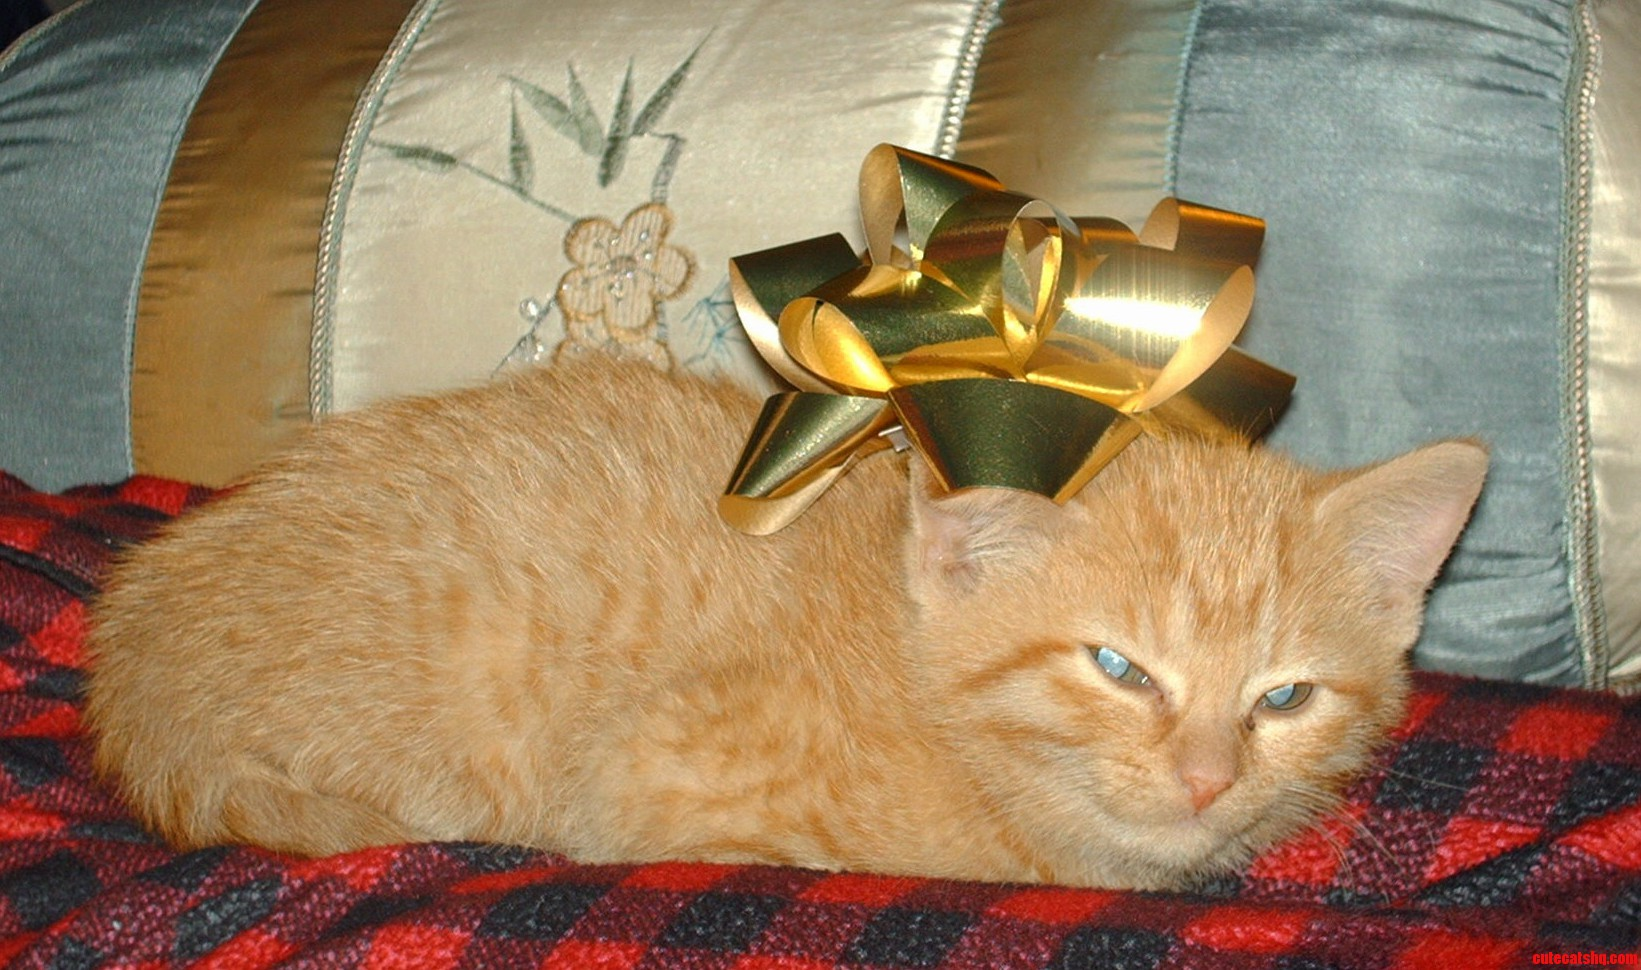 Smug Baby Peaches Wrapped Up In Bows